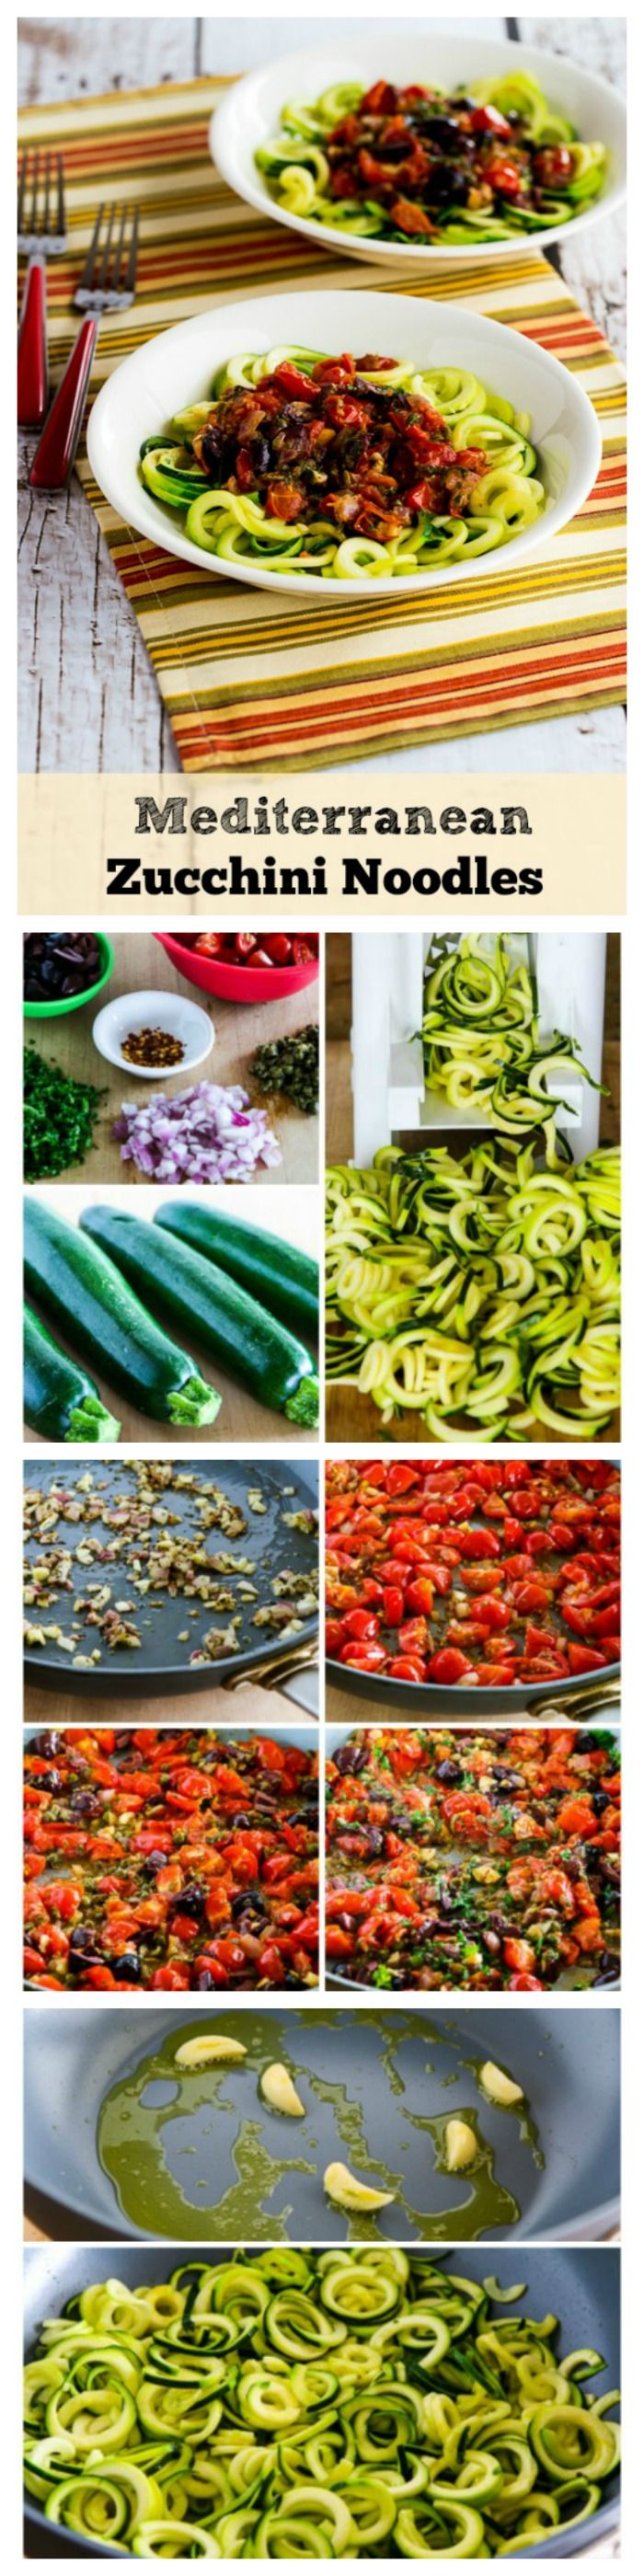 These Mediterranean Zucchini Noodles have a sauce with red onion, garlic, dried herbs, tomatoes, Kalamata Olives, capers, red pepper flakes, and parsley for a healthy dinner that tastes amazing.  This nutritious Meatless Monday recipe is low-carb, gluten-free, Paleo, vegan, and South Beach Phase One.  [from KalynsKitchen.com]